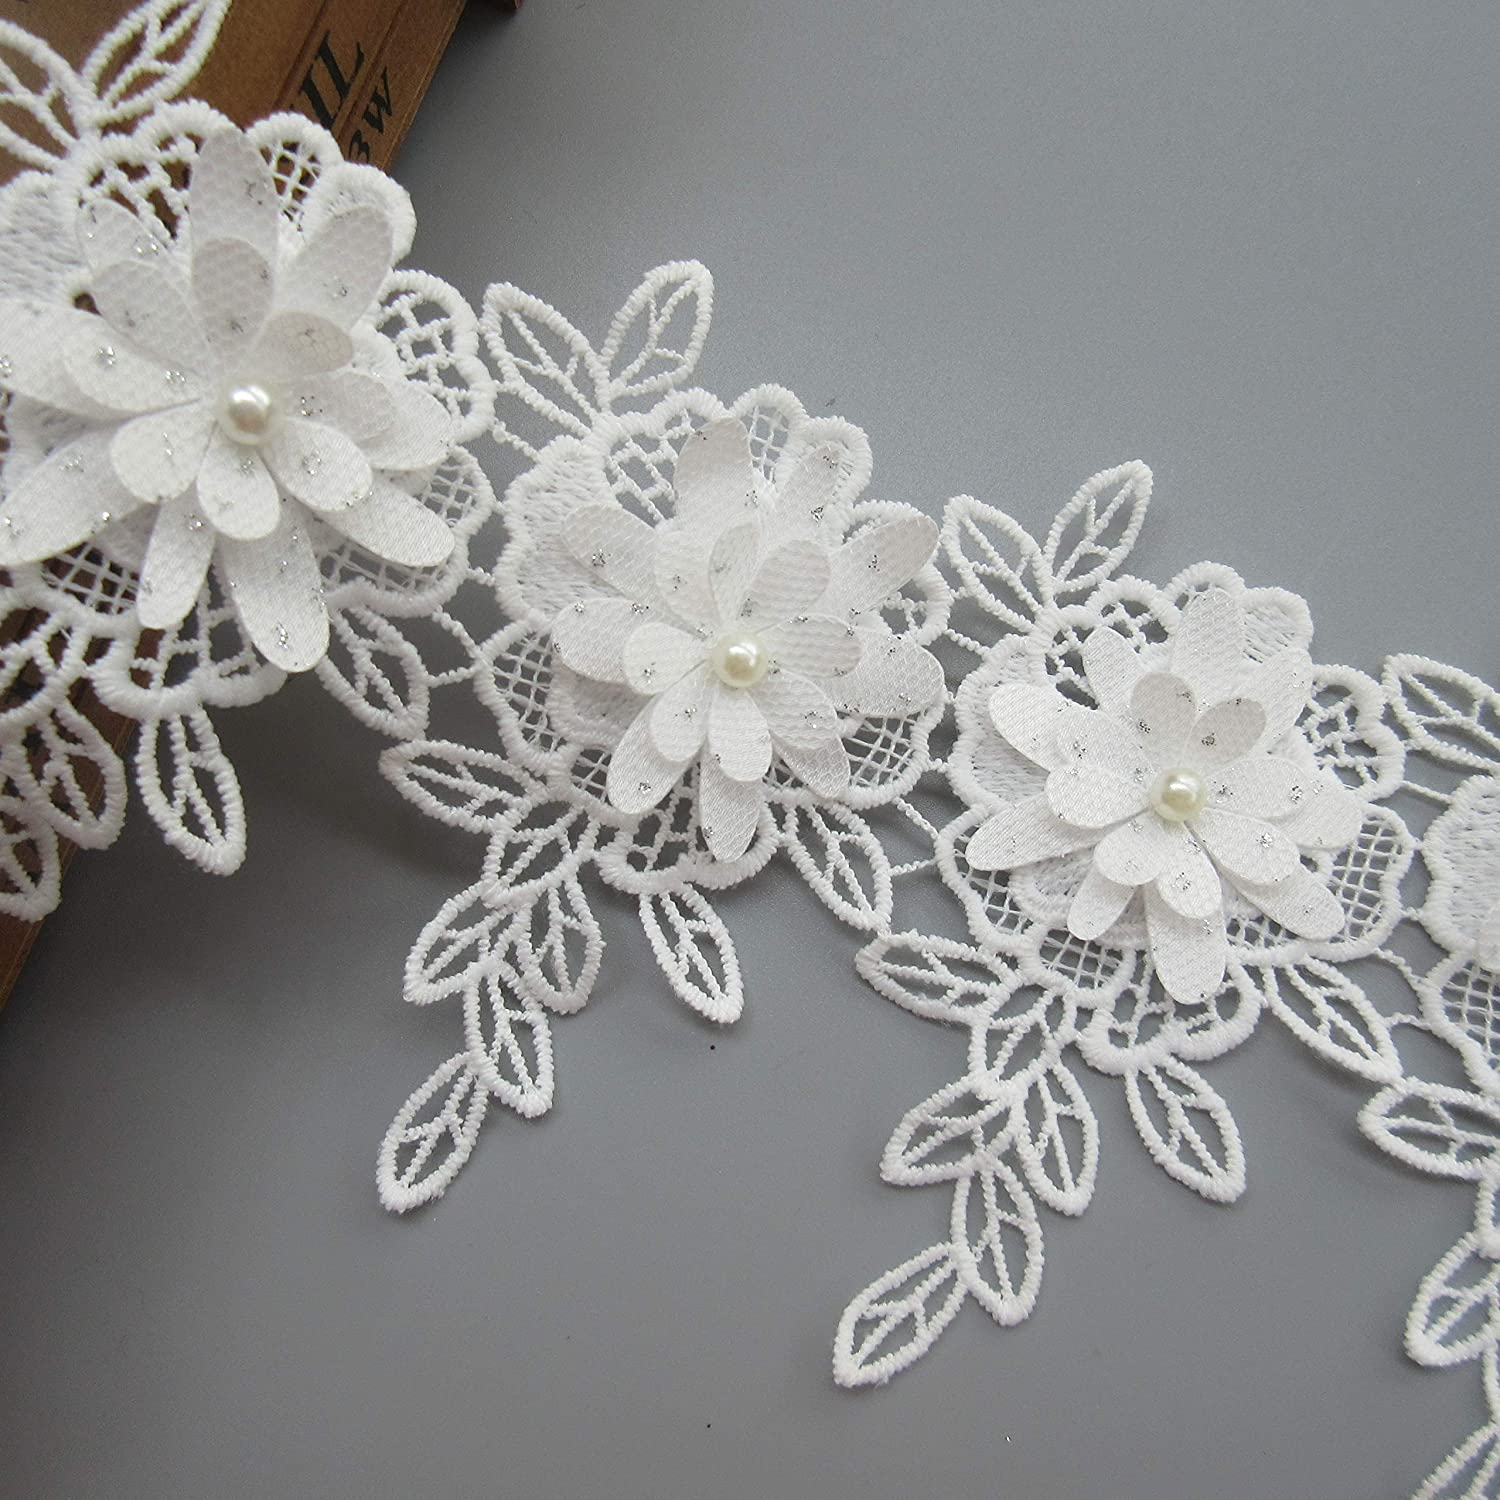 1 Meter 3-layer Flower With Pearl Beads Buds Leaves Fringed Lace Edge Trim Ribbon 6.3/×10.2cm Vintage Style White Flower Fabric Edging Trimmings Embroidered Applique Sewing Craft Wedding Bridal Dress